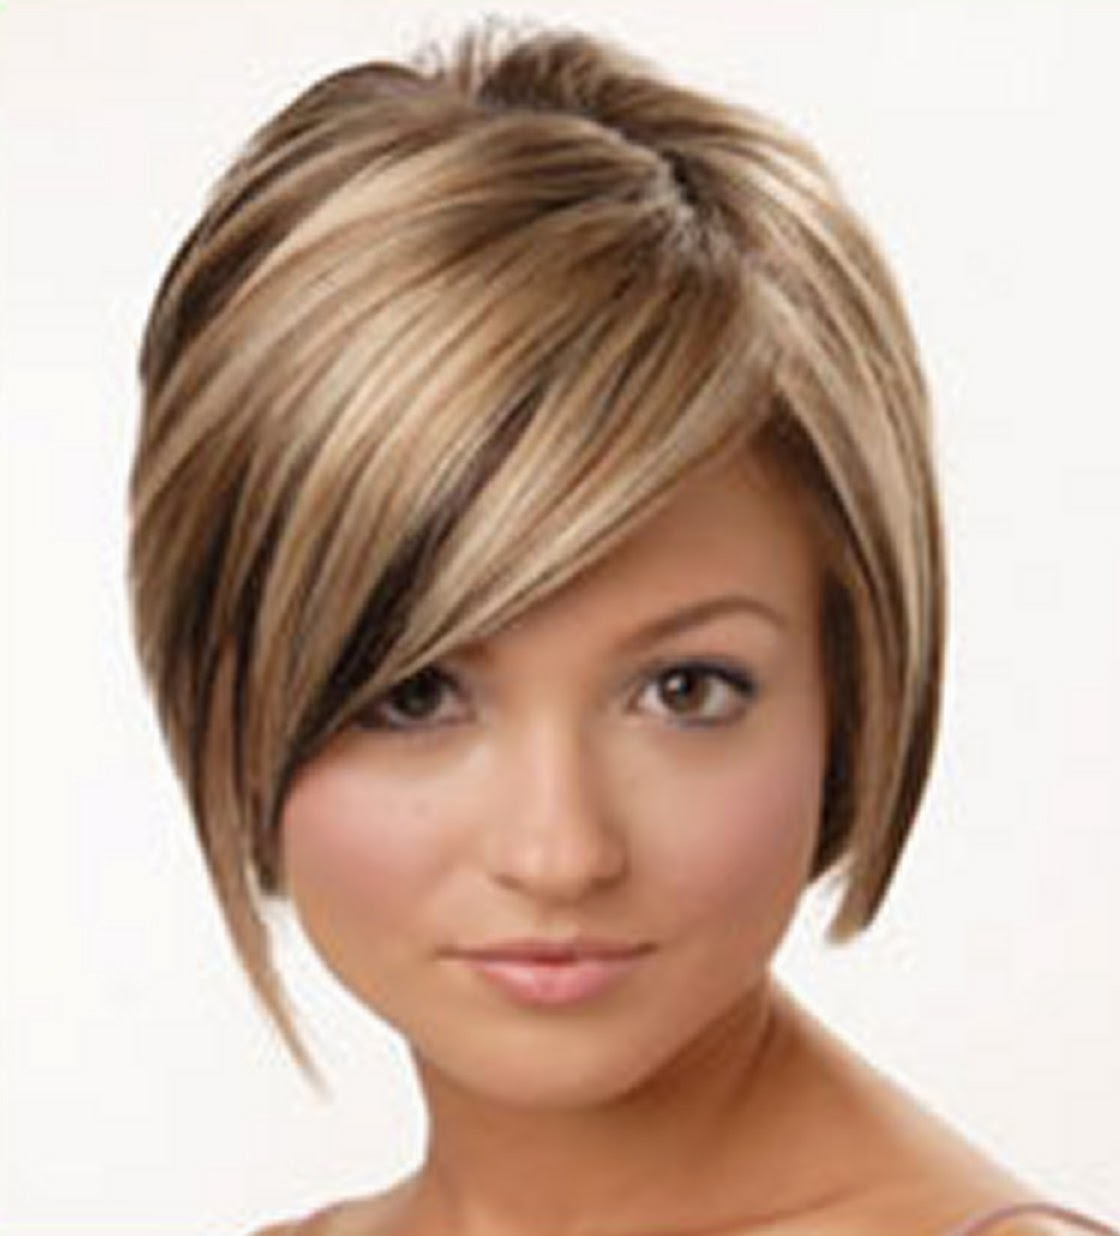 Wondrous Women39S Short Hairstyles For Thin Hair Short Hairstyles For Black Women Fulllsitofus